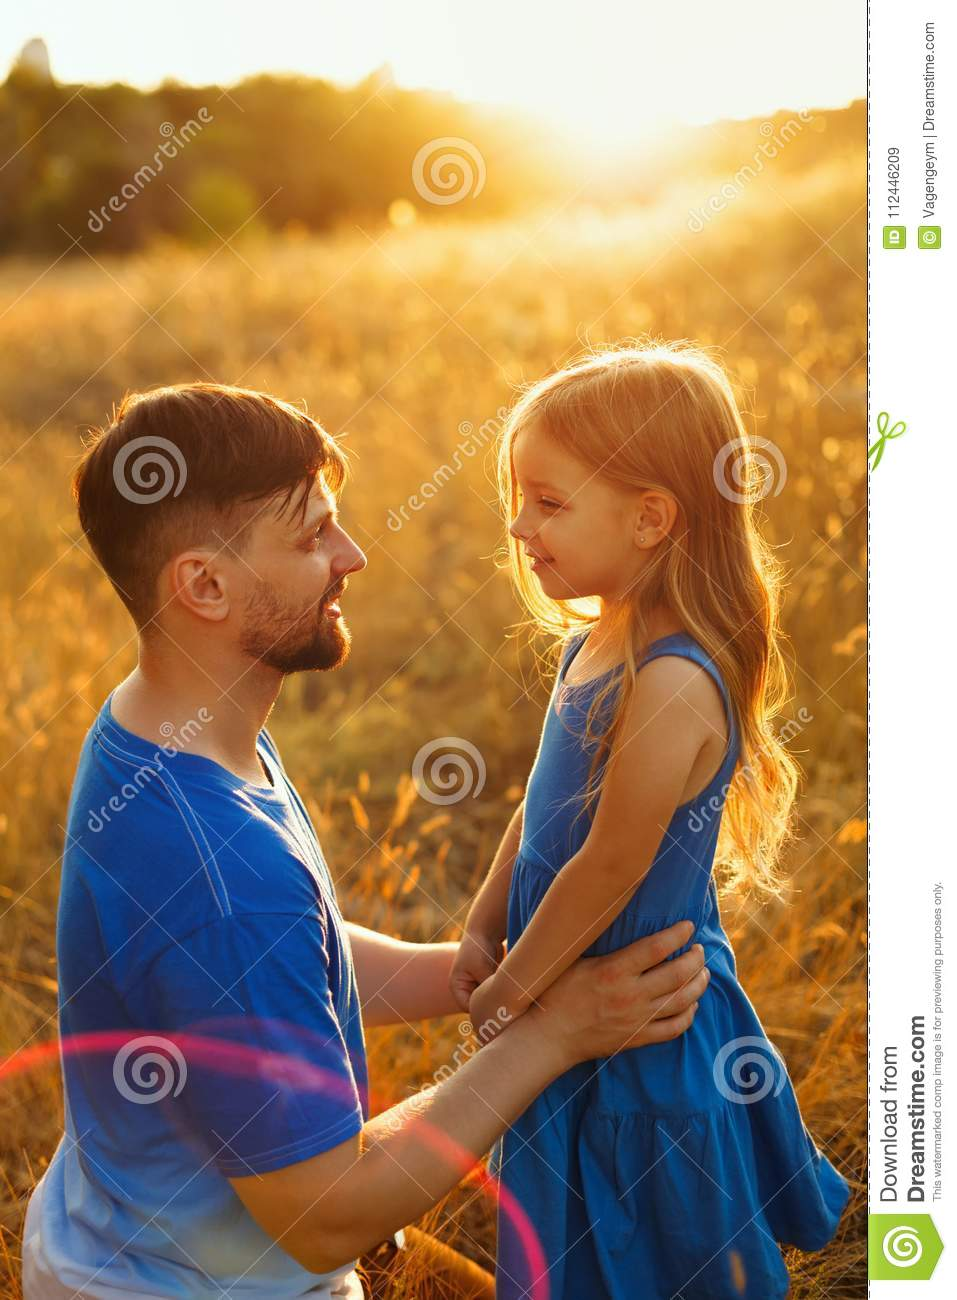 Family. Father and daughter. Leisure